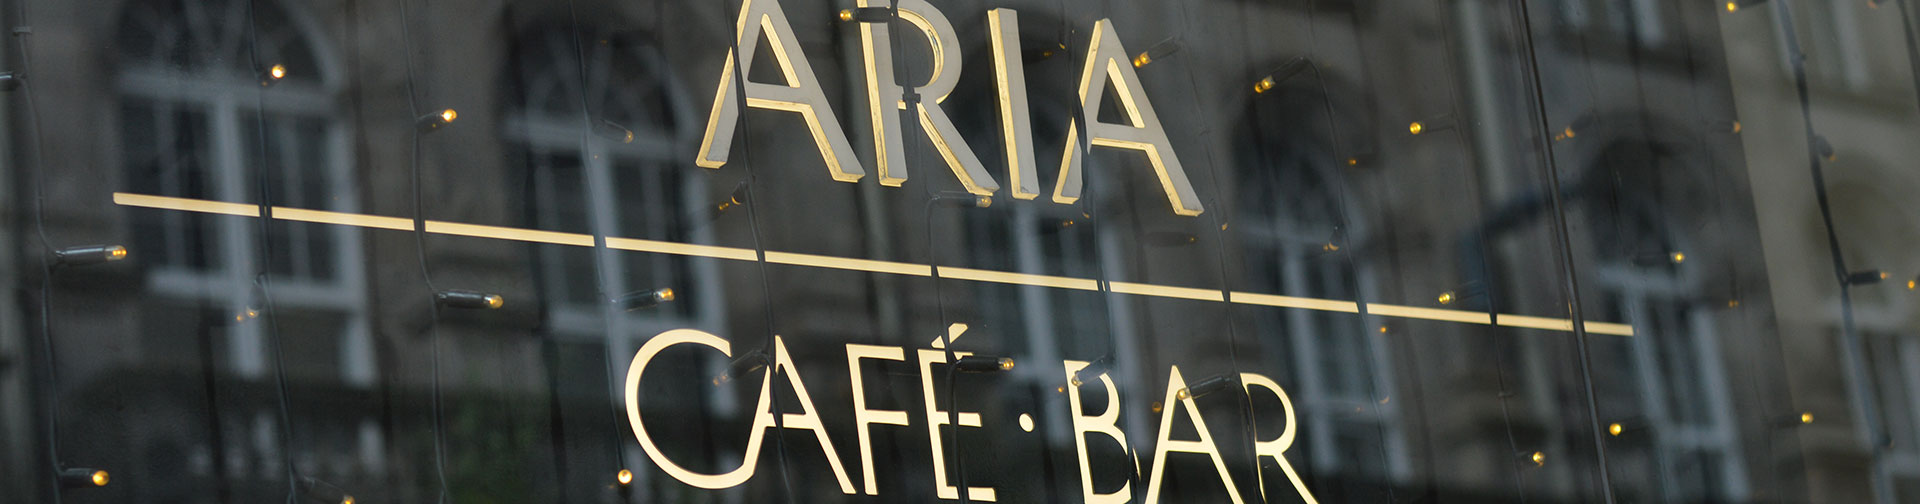 aria-cafe-bar